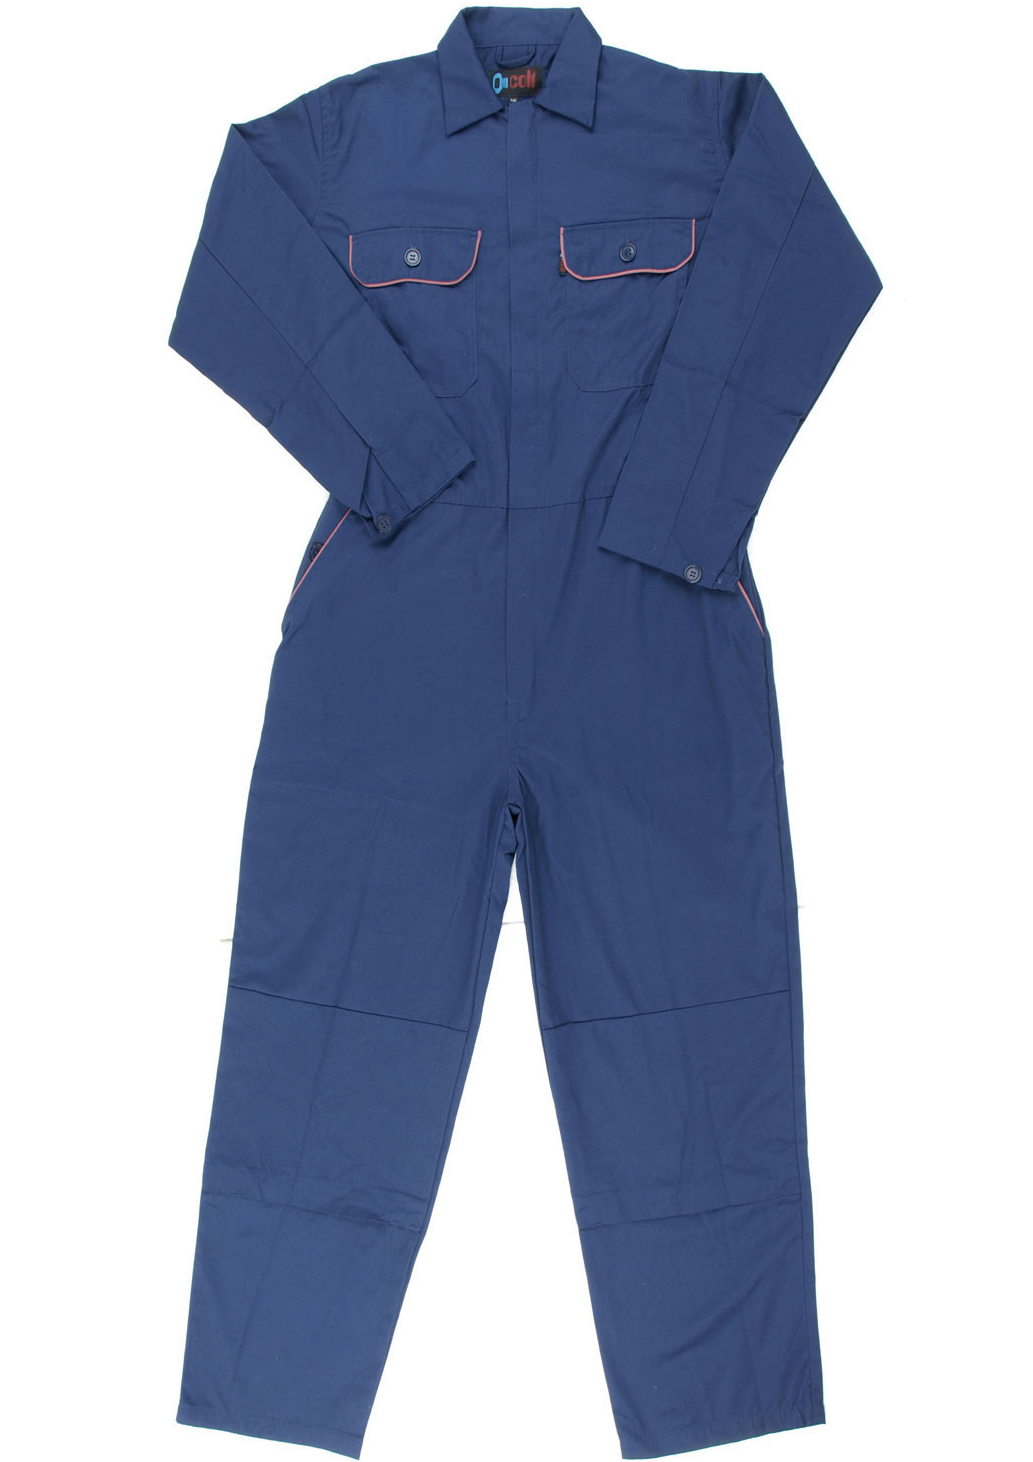 overalls: a pair of pants with an extra piece attached that covers the chest and has straps that go over the shoulders: a loose coat that is worn over clothes so that they do not get dirty overalls: a piece of clothing that is worn over other clothes to protect them.